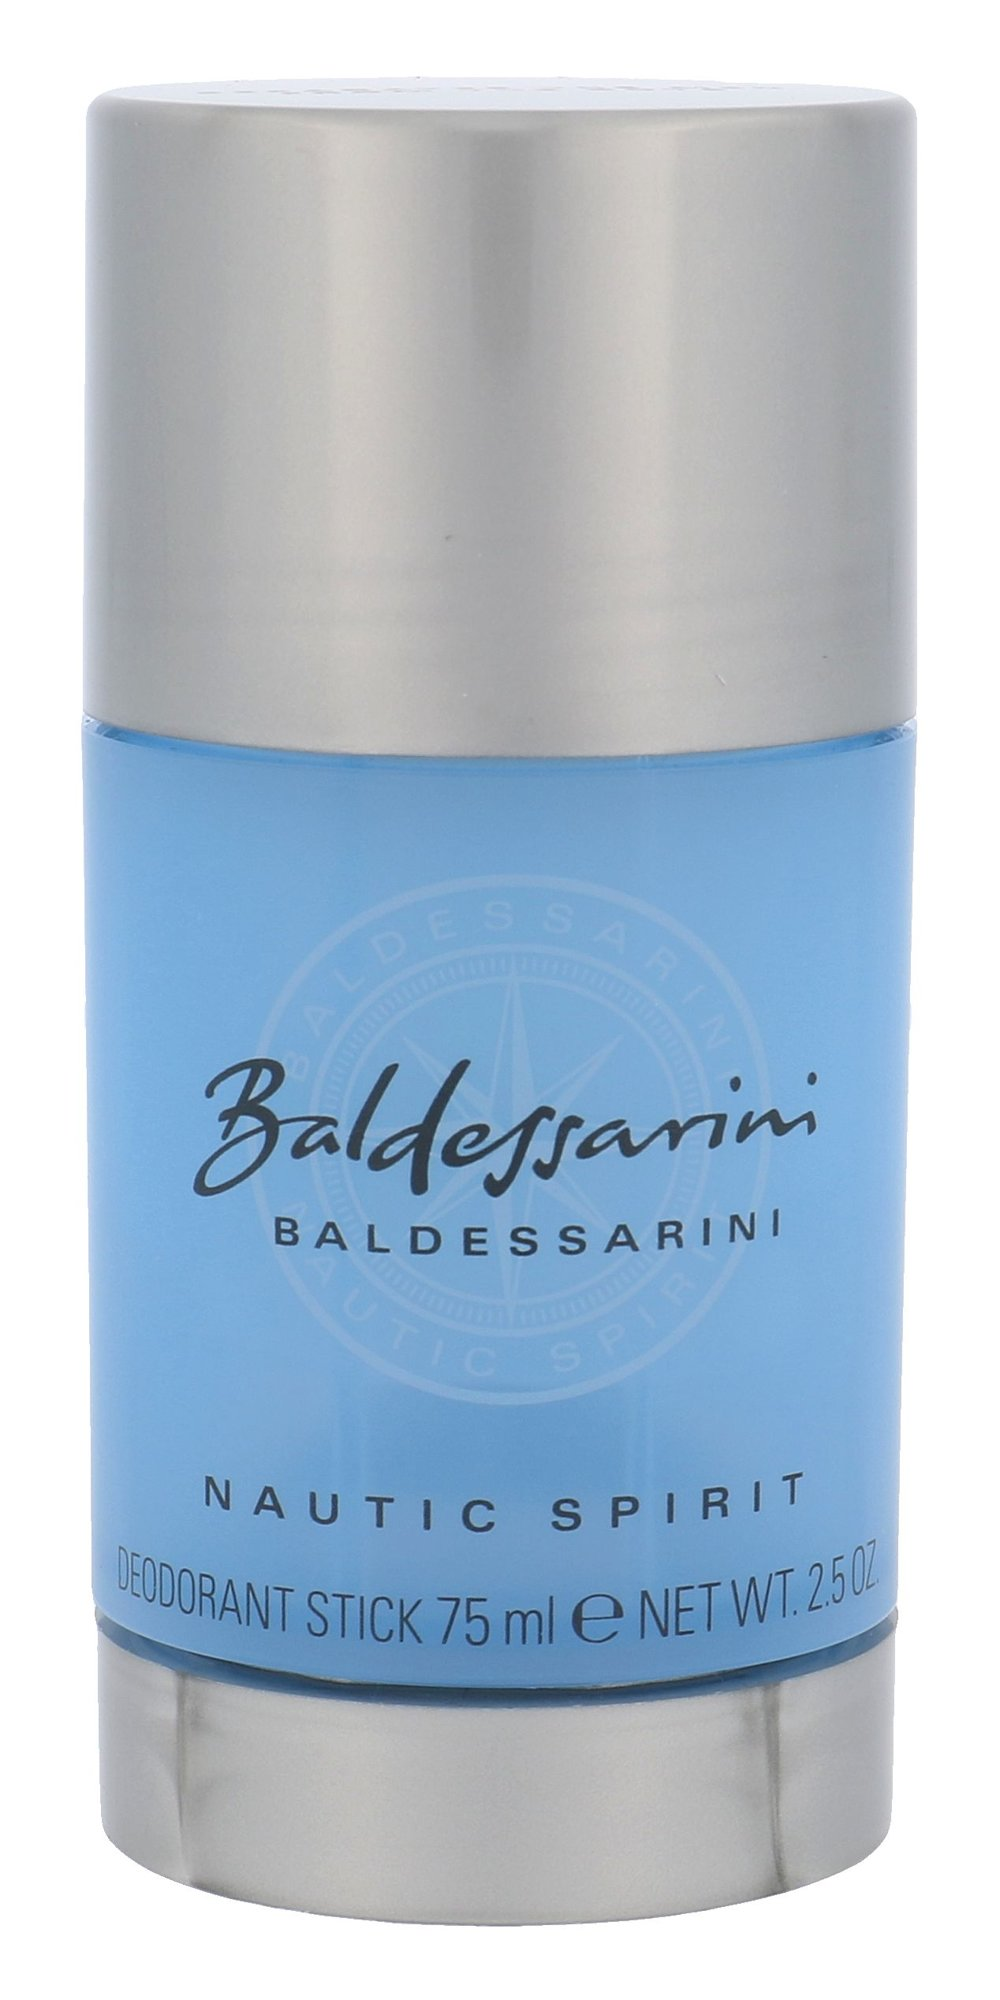 Baldessarini Nautic Spirit Deostick 75ml